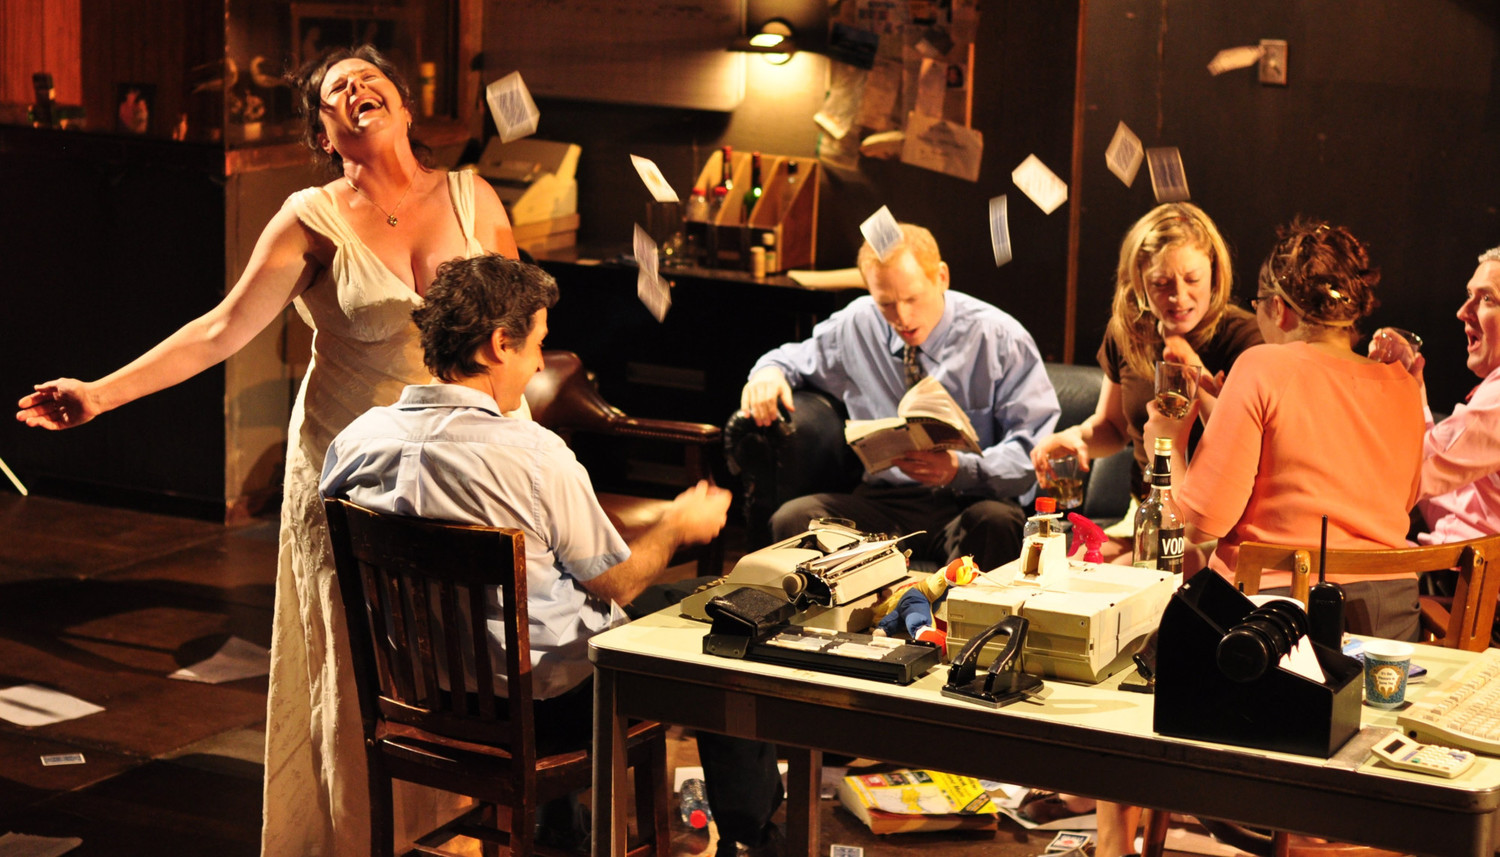 BWW Review: Elevator Repair Service's GATZ is an Adapted Masterpiece